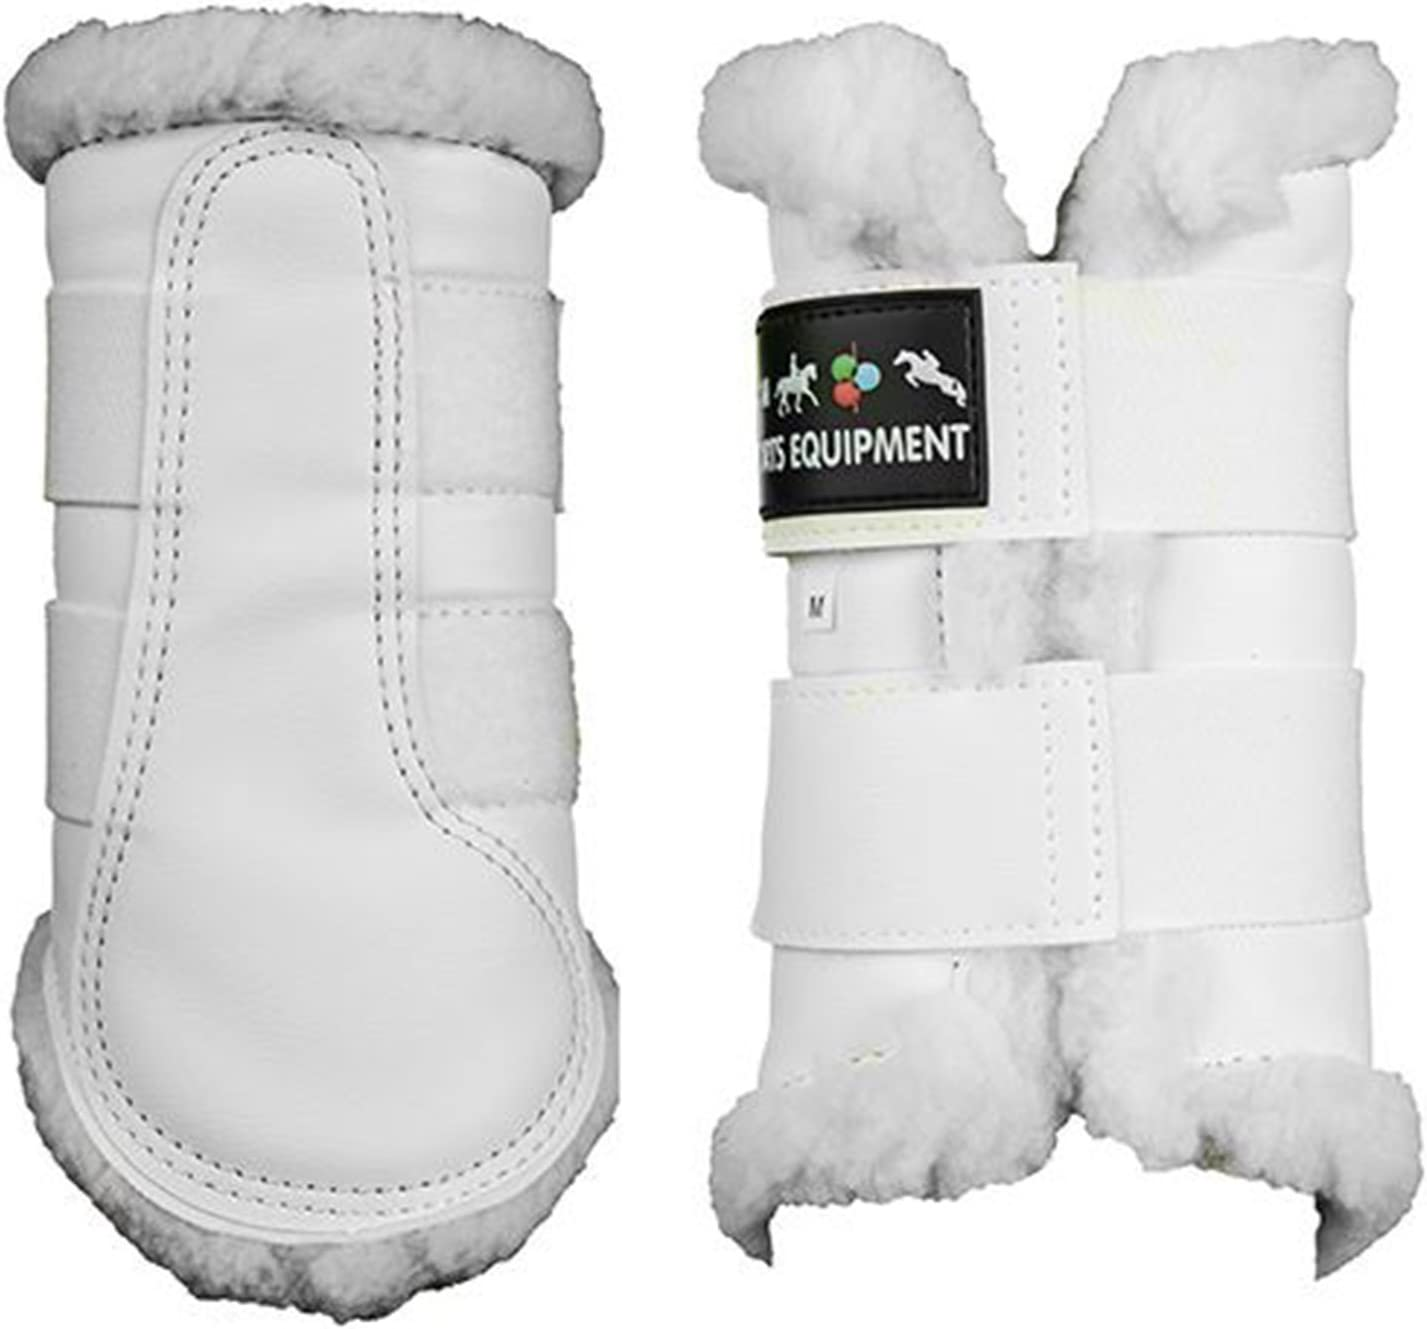 Fleece draw Bags for brushing boots// tendon boots// bandages// riding hats// PE kit